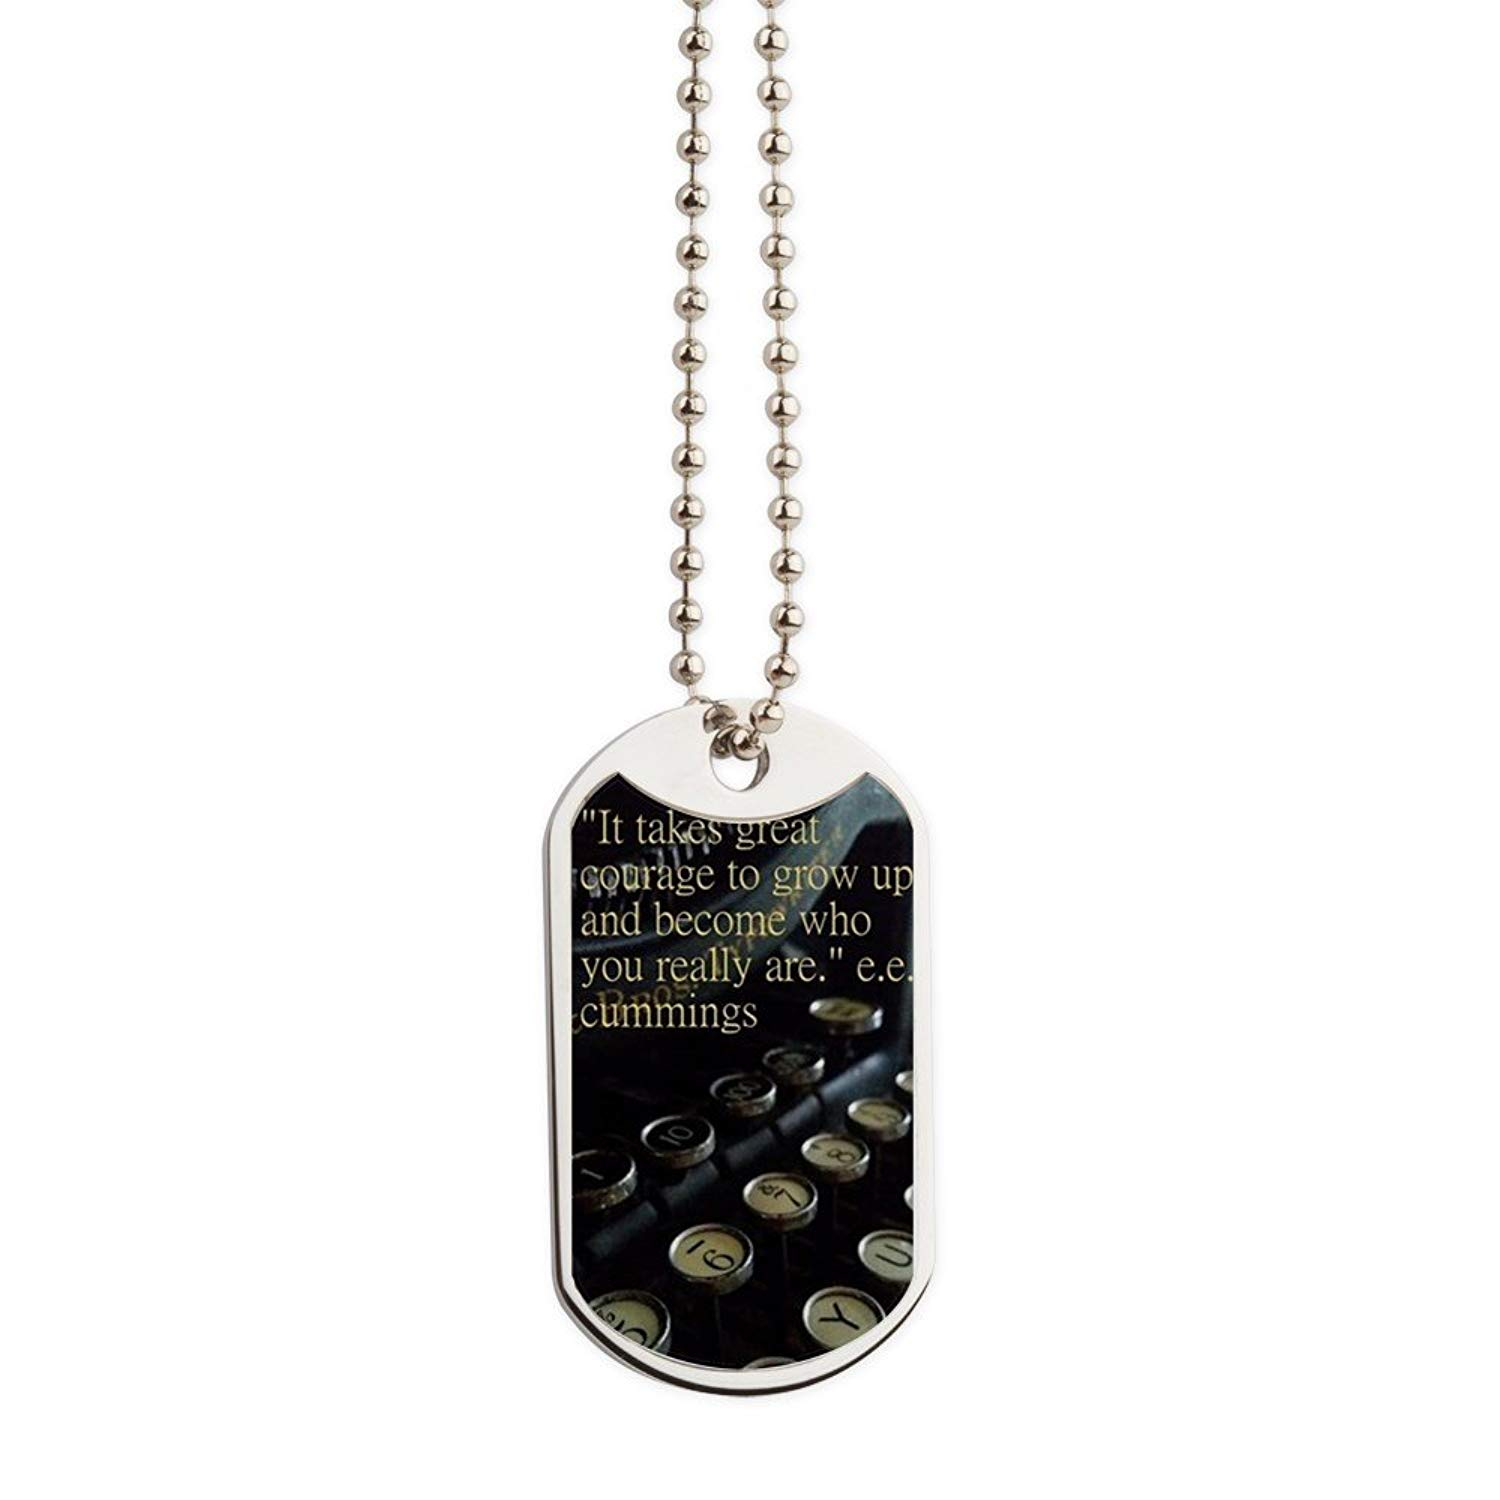 CafePress - Courage Vintage Typewriter - Military Style Dog Tag, Stainless Steel with Chain